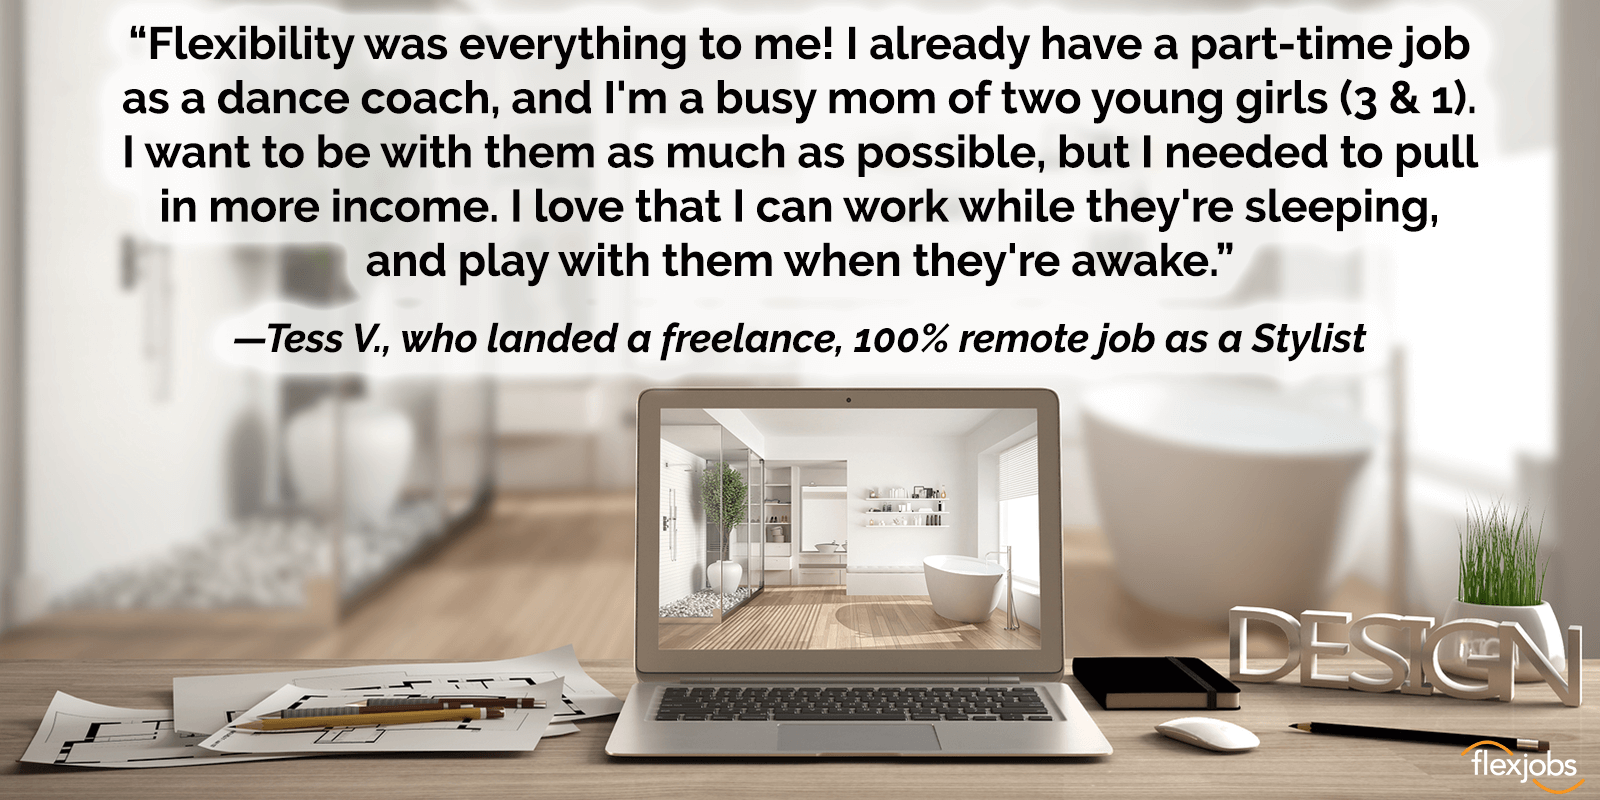 Tess V used FlexJobs to find a remote job as a stylist